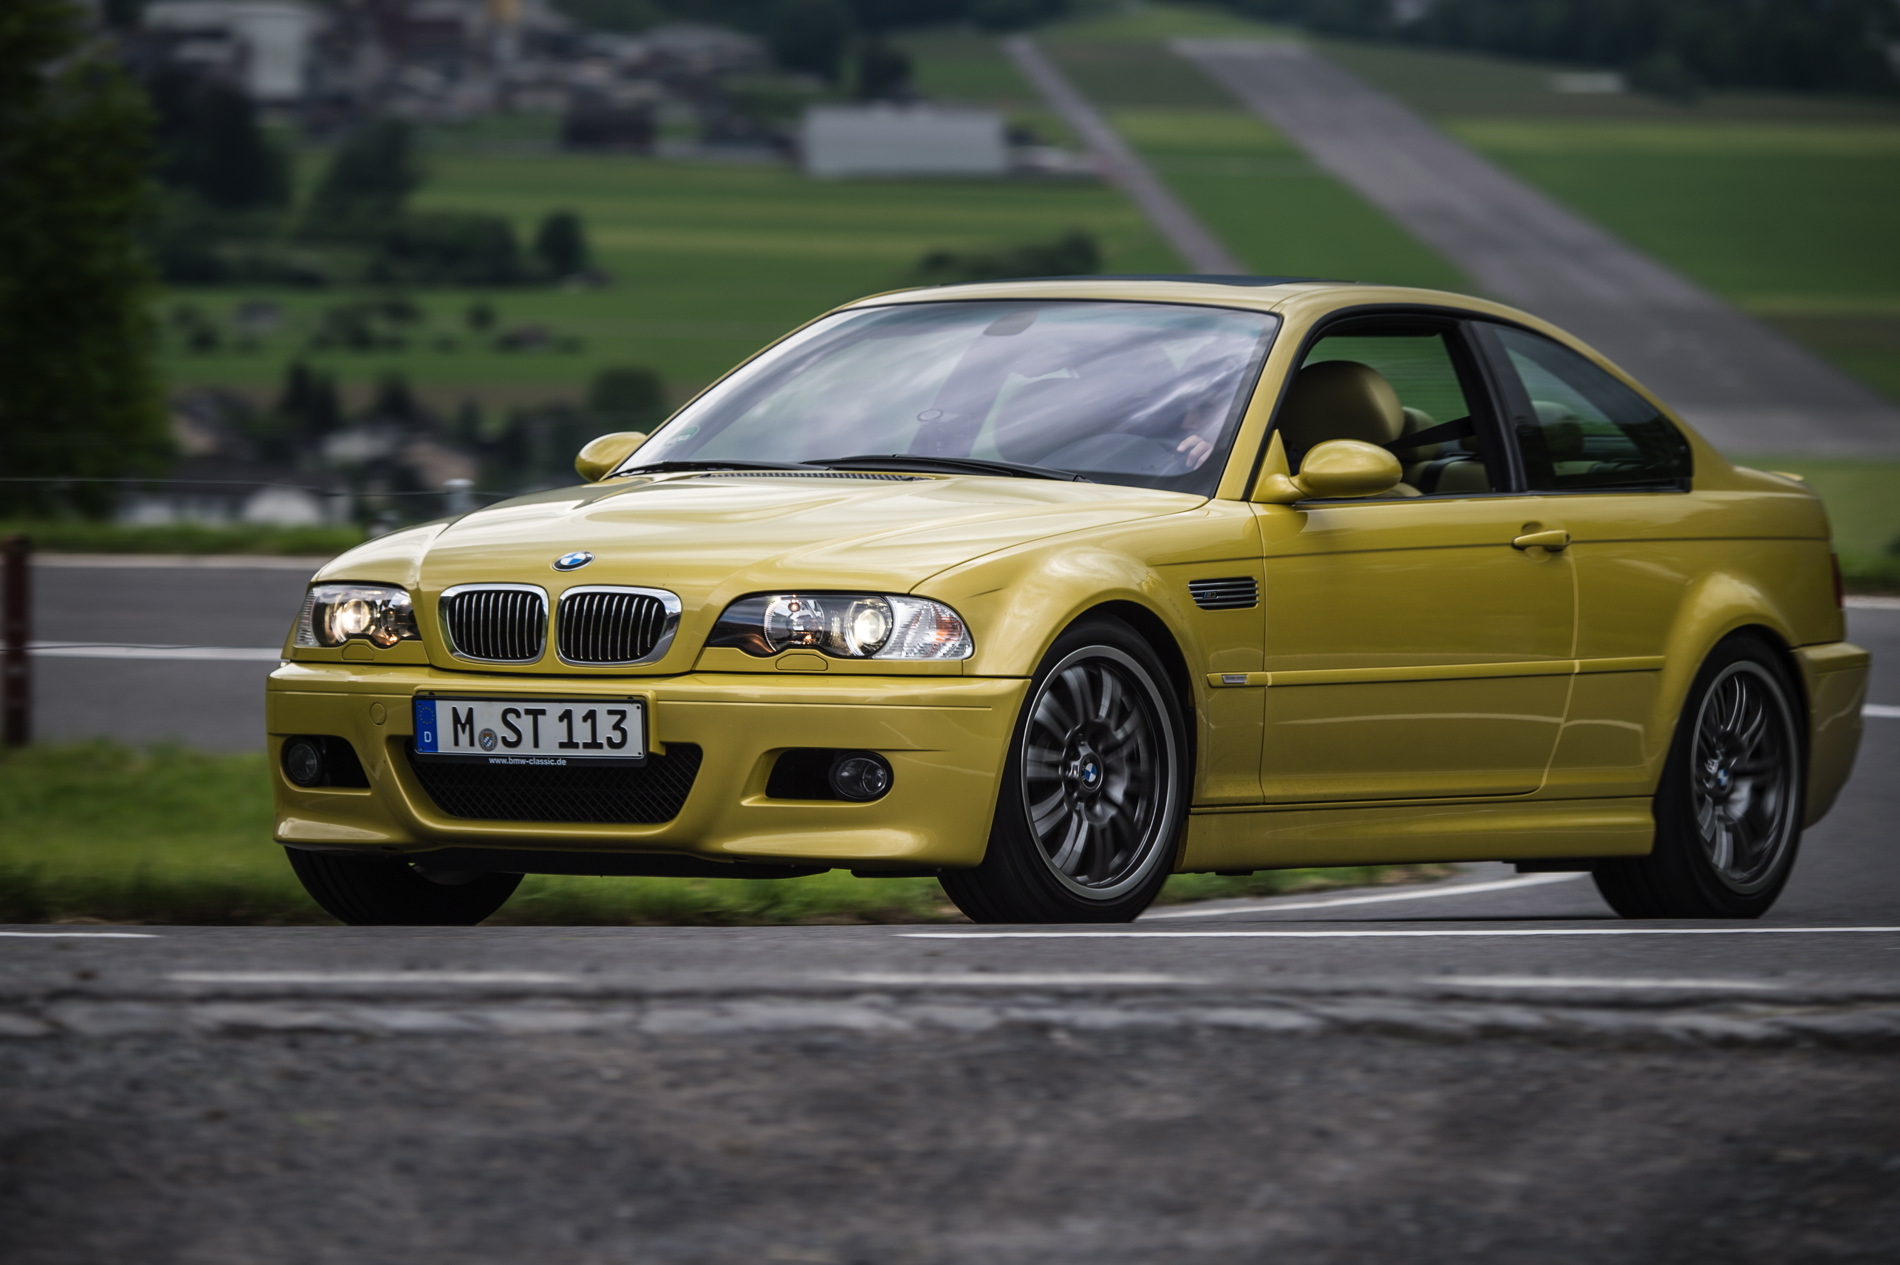 BMW E46 M3 phoenix yellow 12